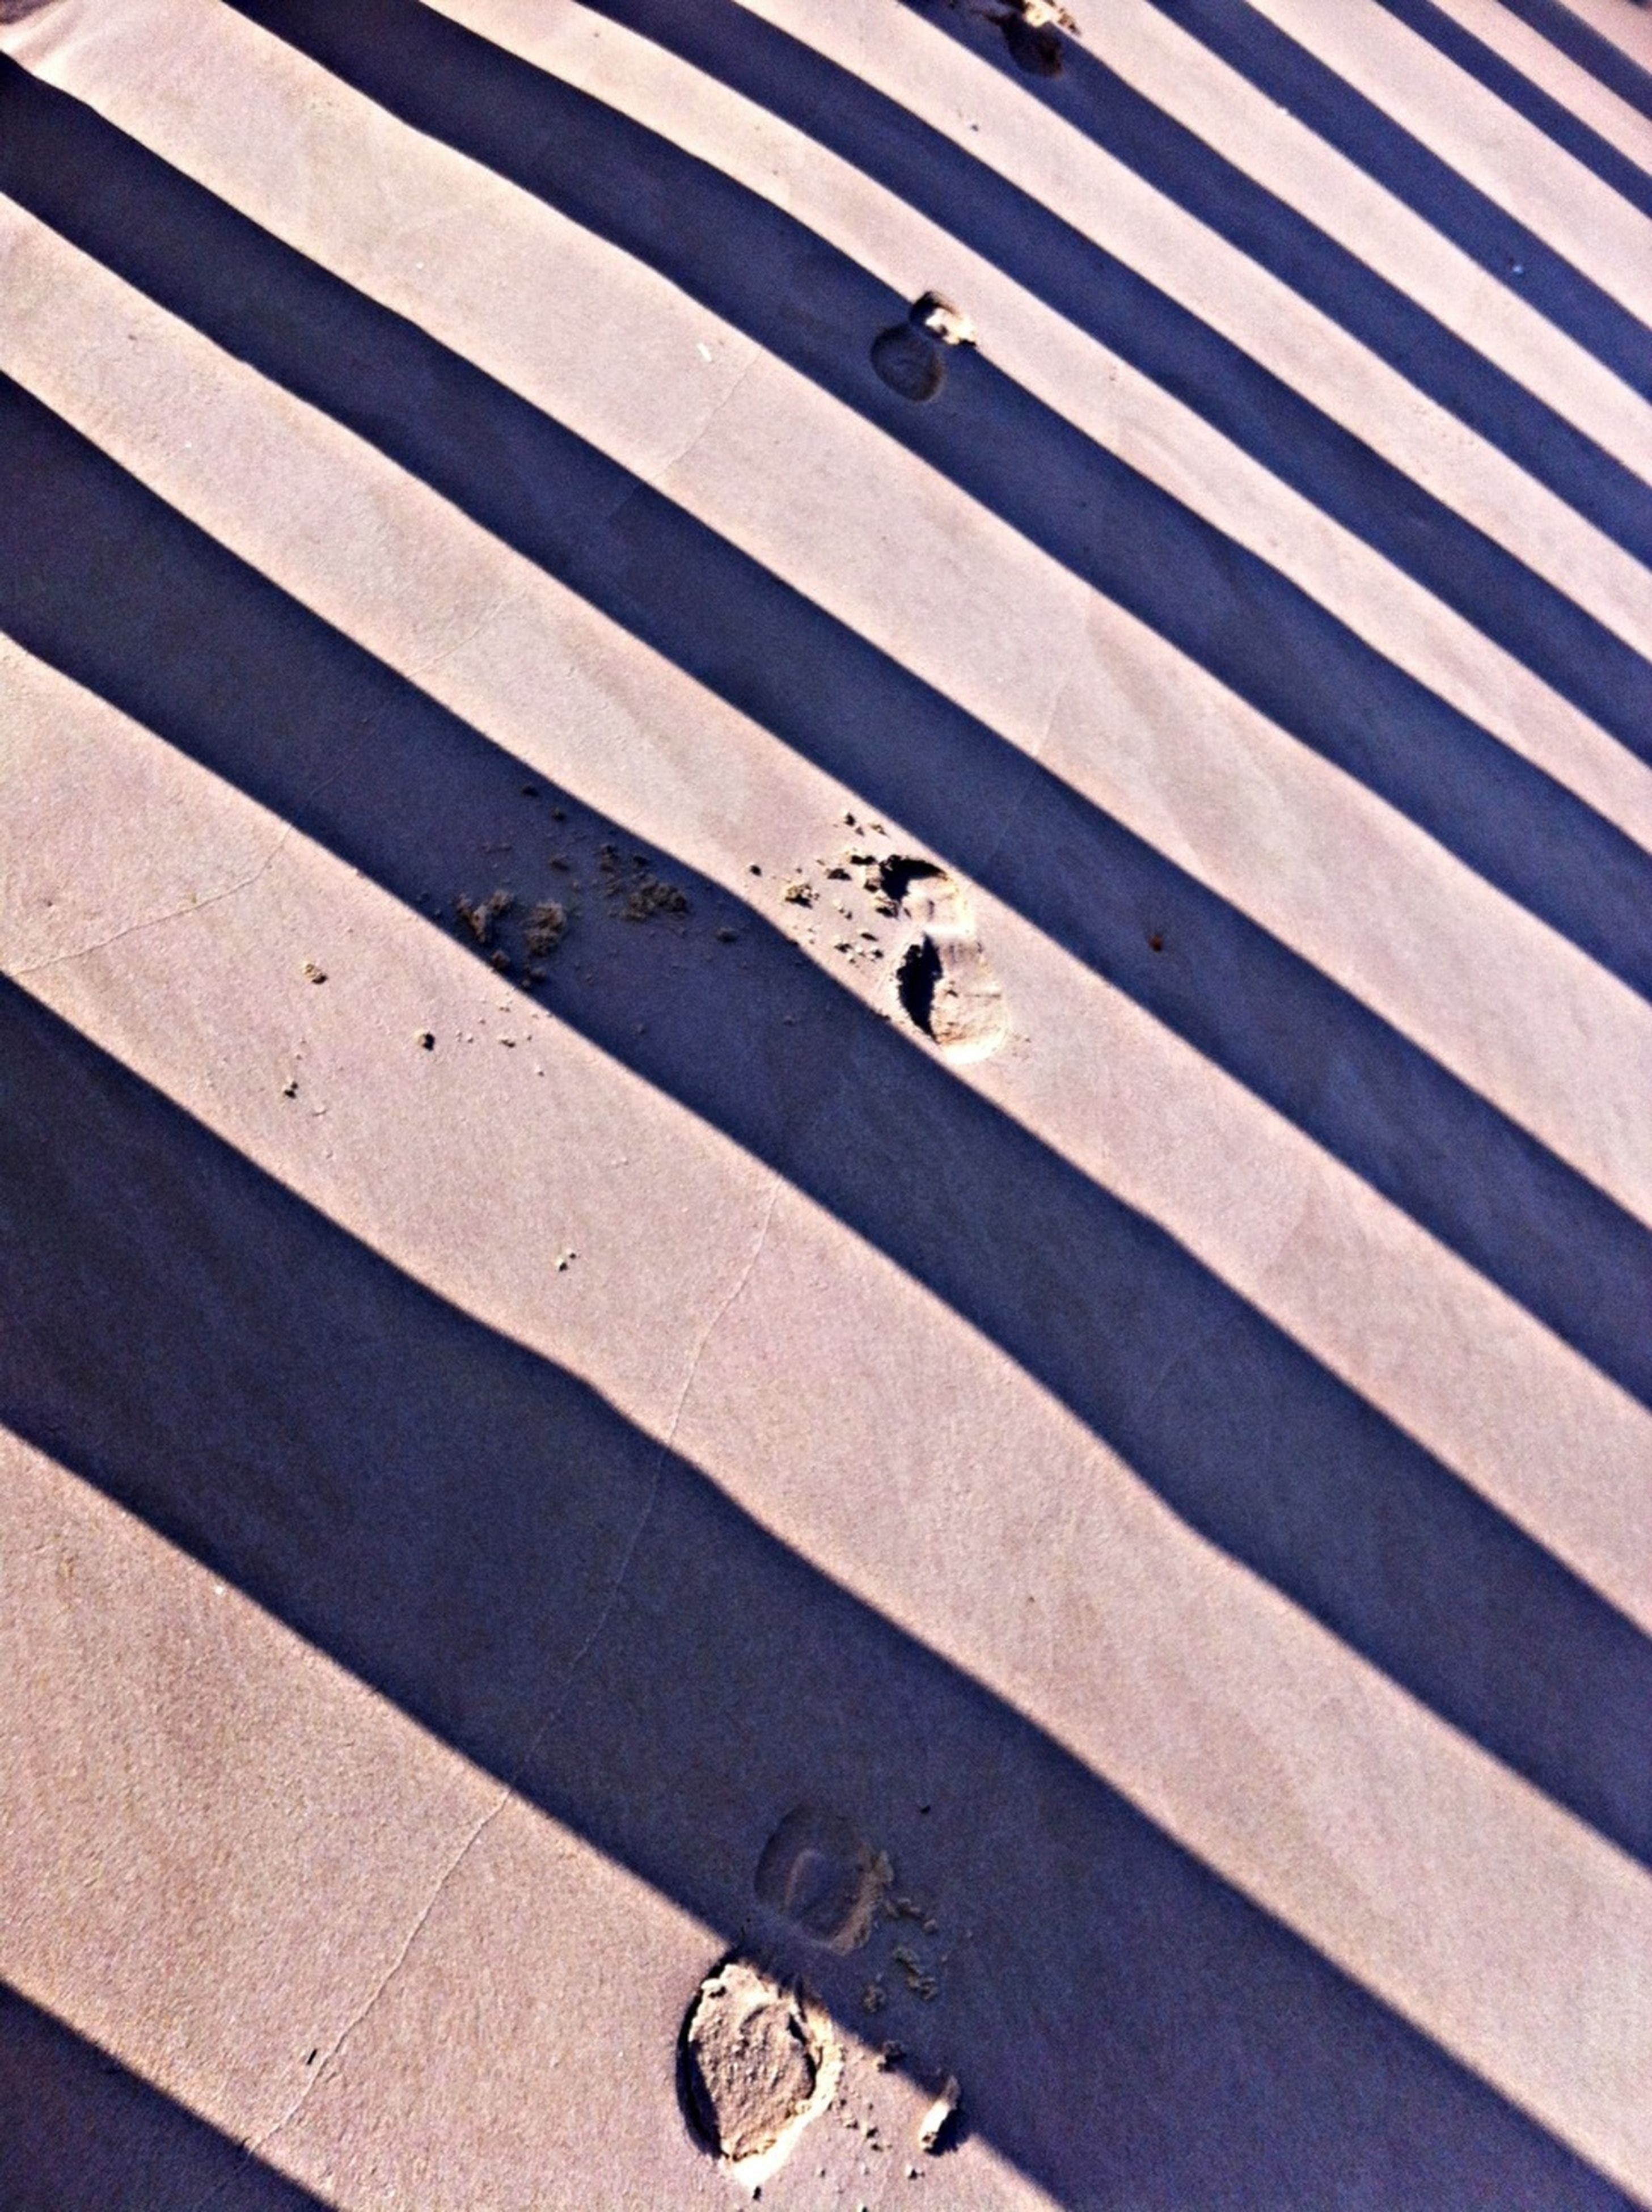 road marking, high angle view, shadow, street, walking, lifestyles, transportation, road, men, zebra crossing, sunlight, leisure activity, asphalt, low section, person, unrecognizable person, day